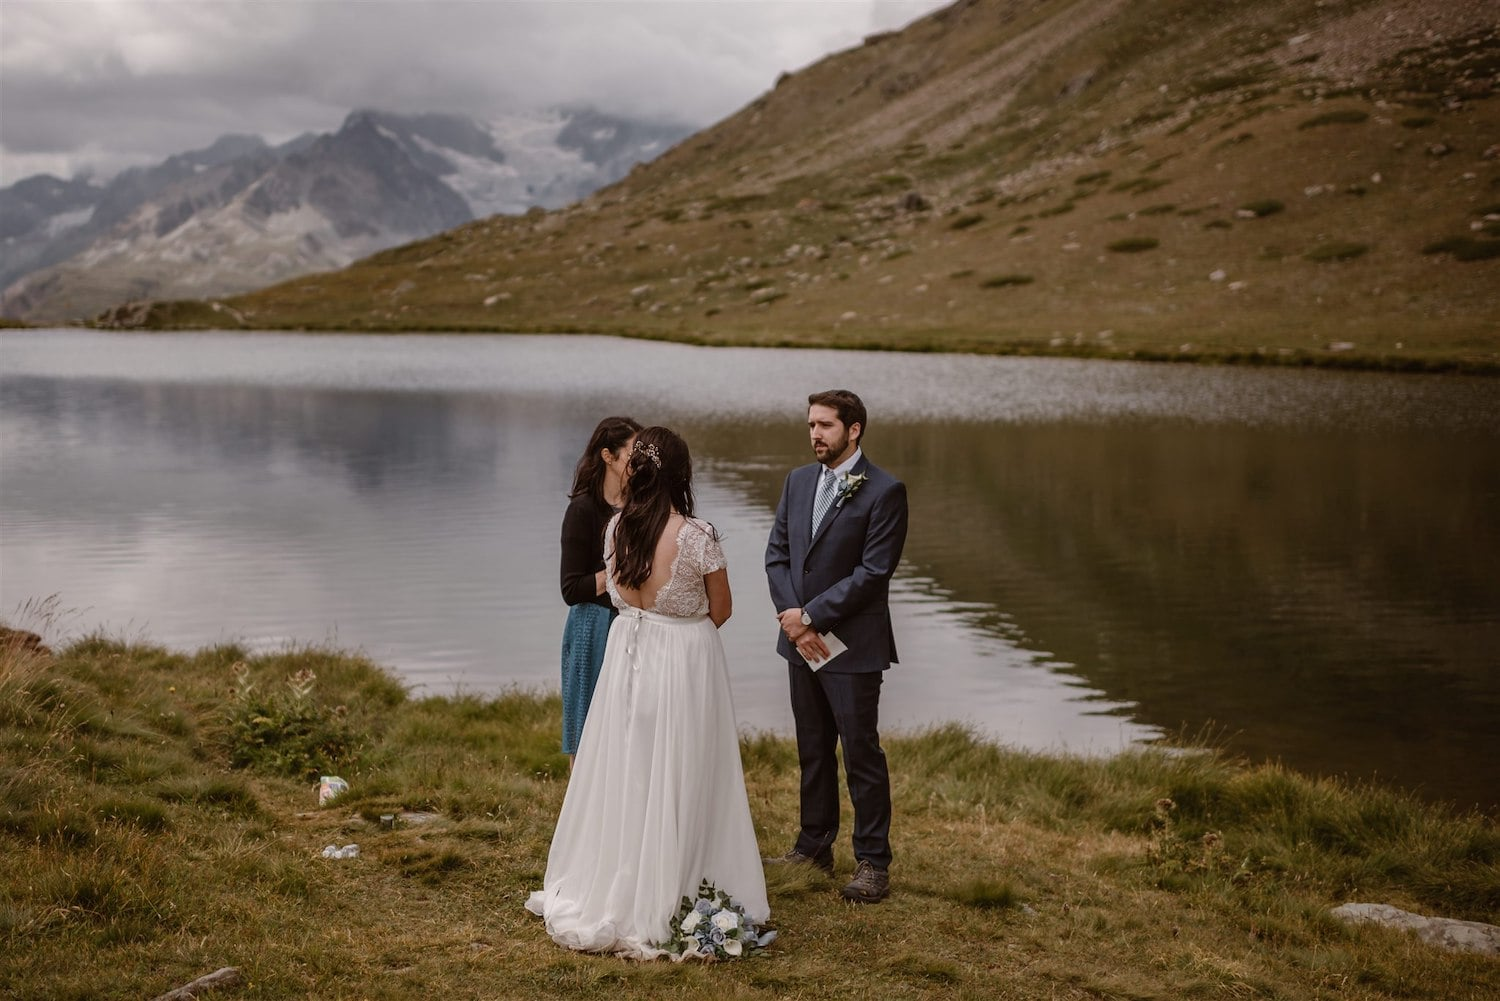 Amazing marriage ceremony and landscape in Zermatt, Switzerland